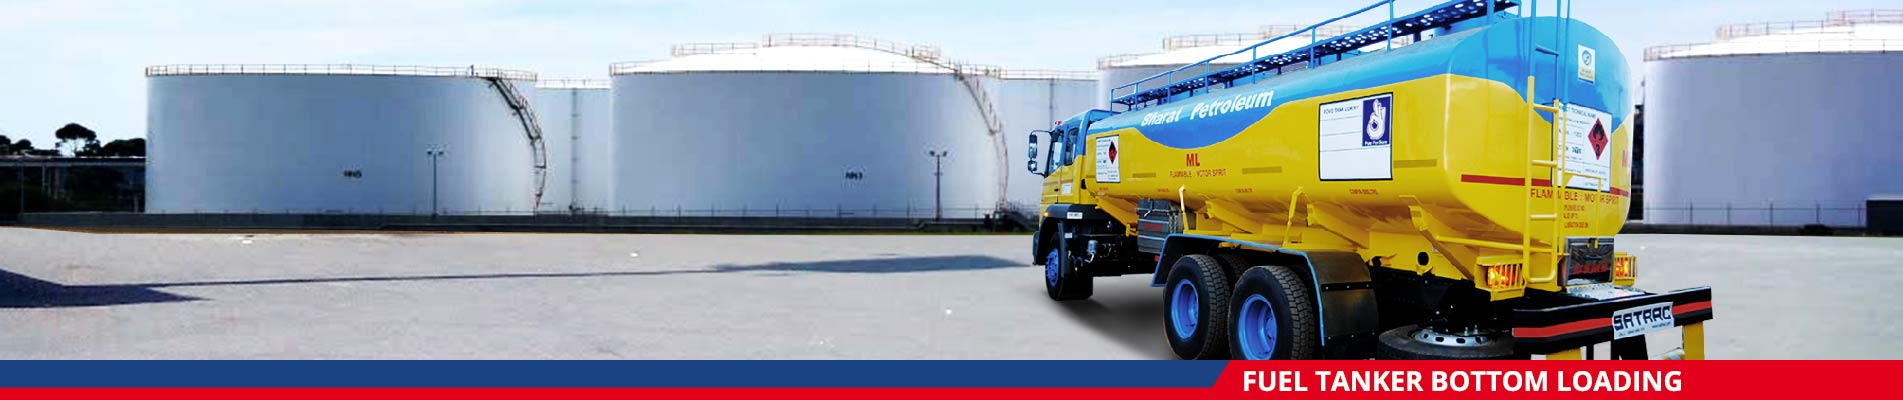 Fuel Tanker Bottom Loading Manufacturers in India